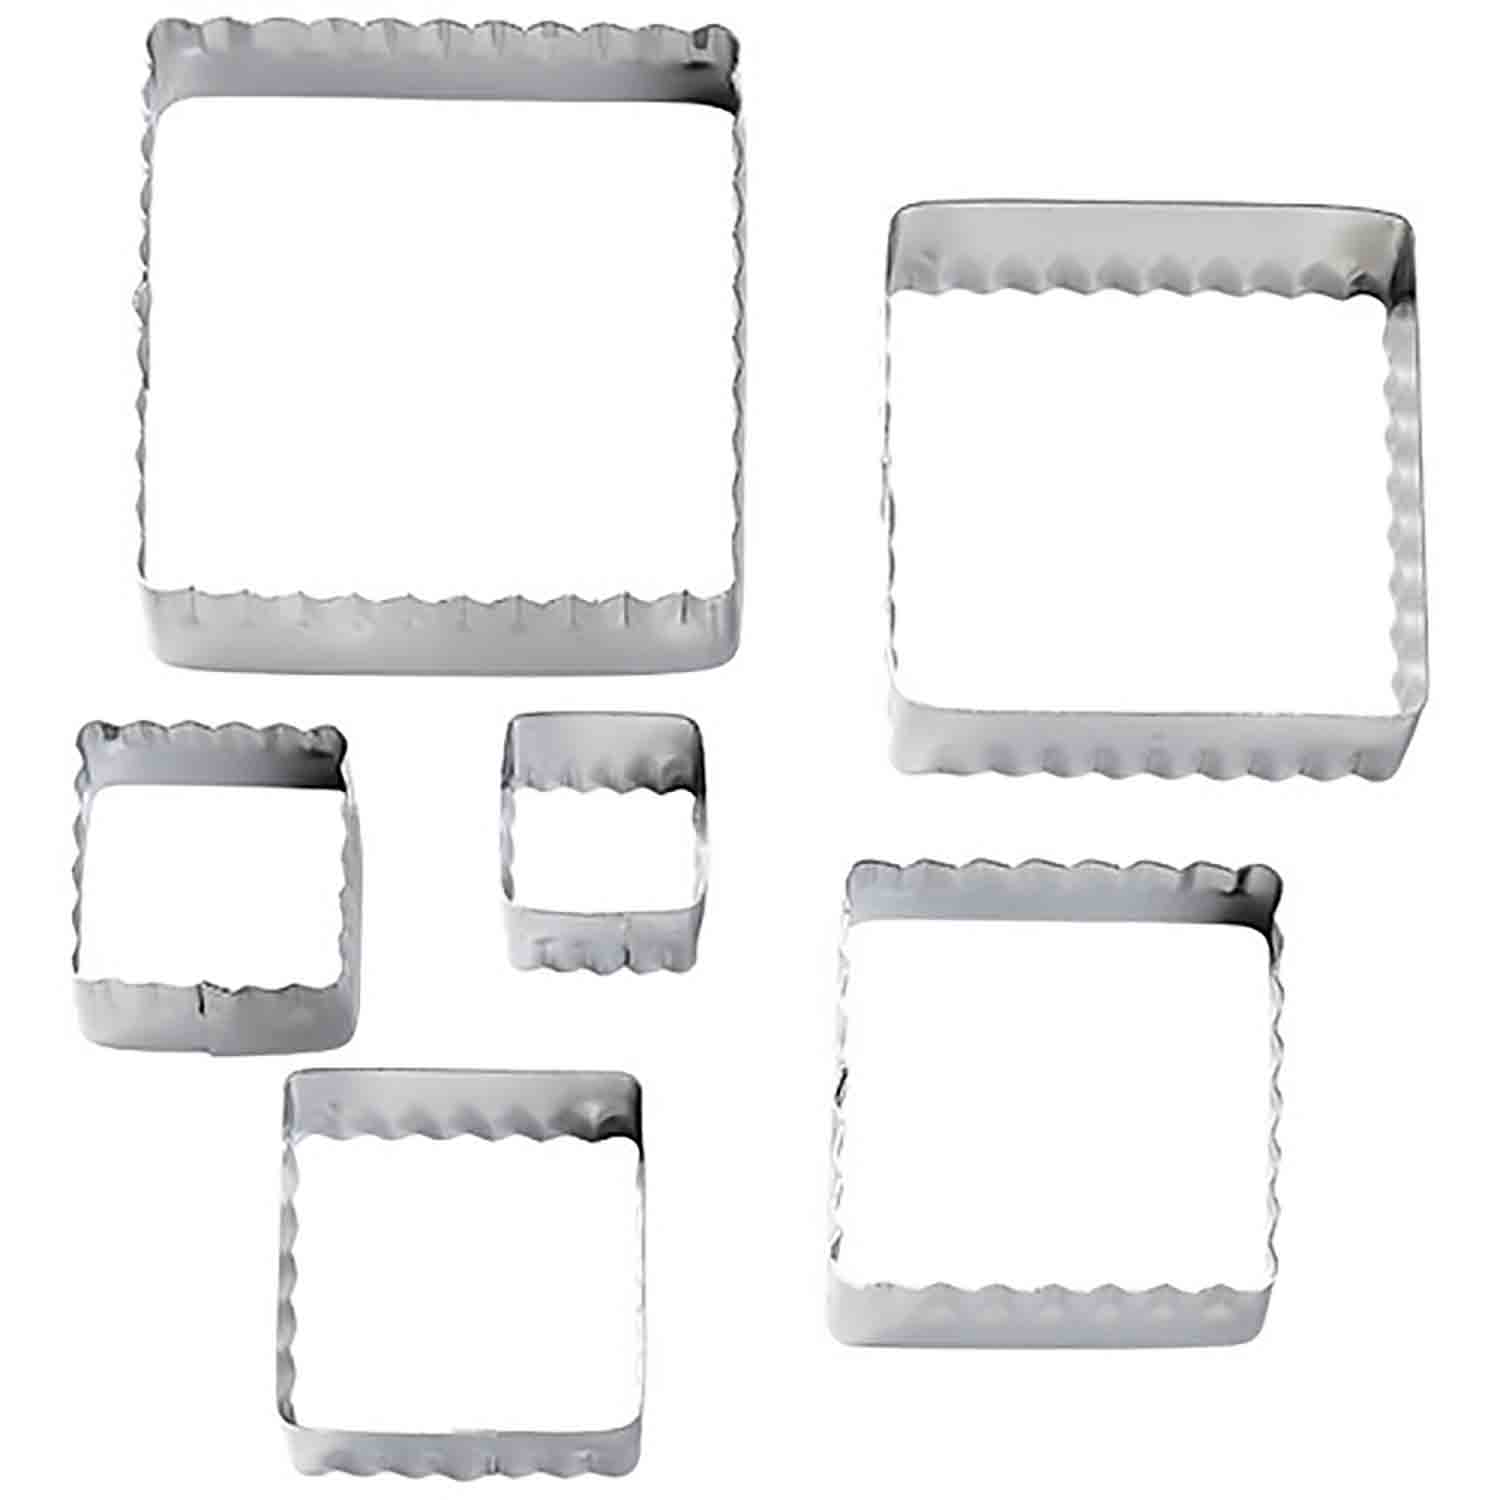 Straight and Fluted Square Cutter Set